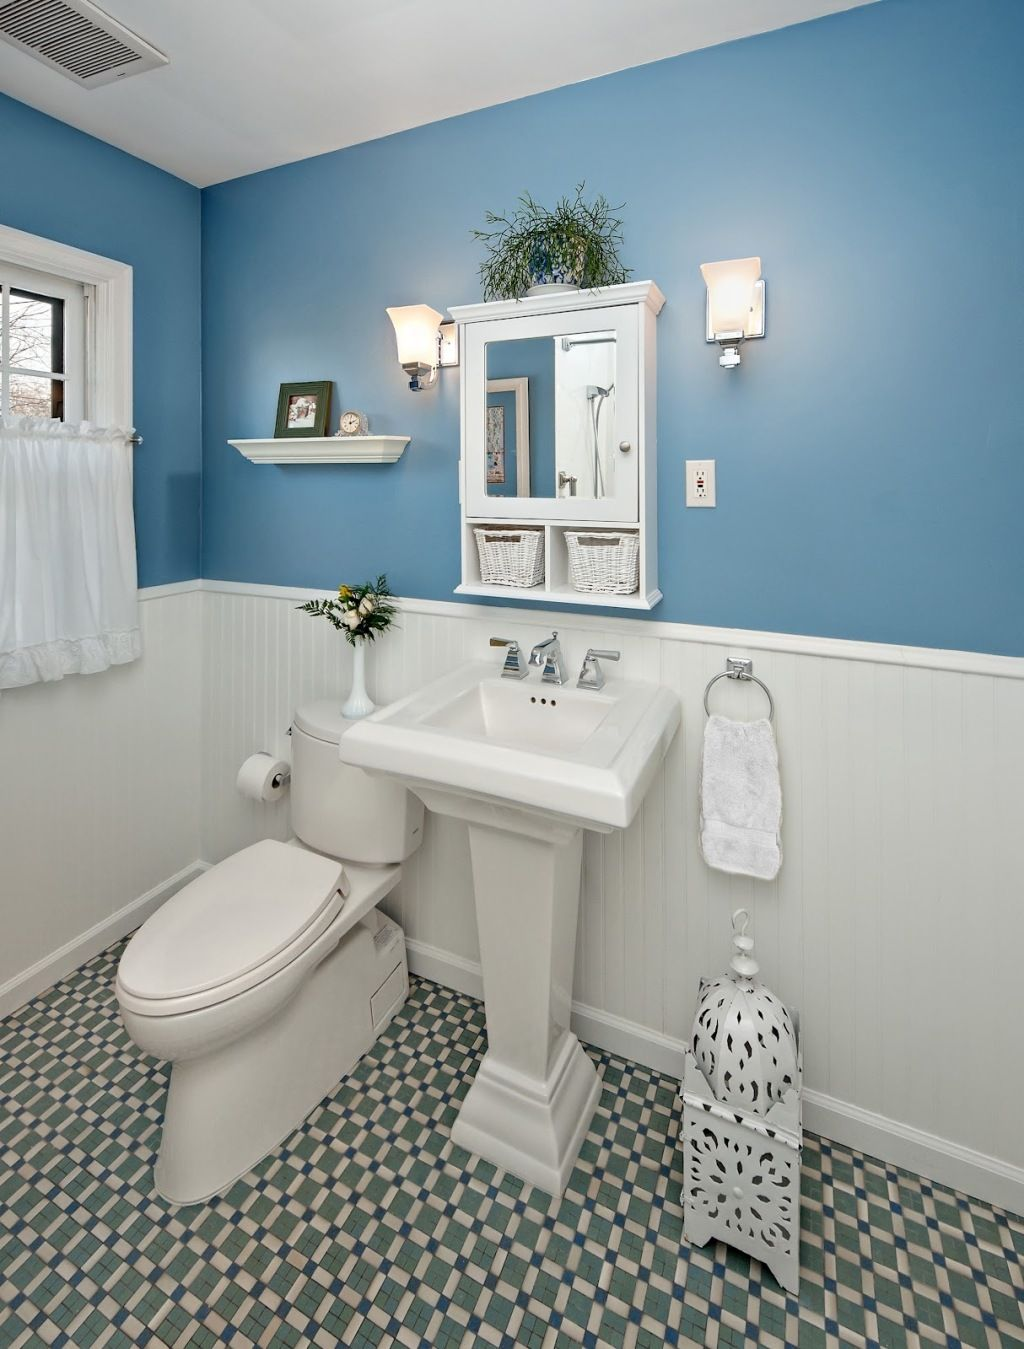 Chic Bathroom Design With Two Color Combination Cadet Blue And White With Beauty Mirror Framing Ce White Bathroom Decor Light Blue Bathroom Blue Bathroom Walls